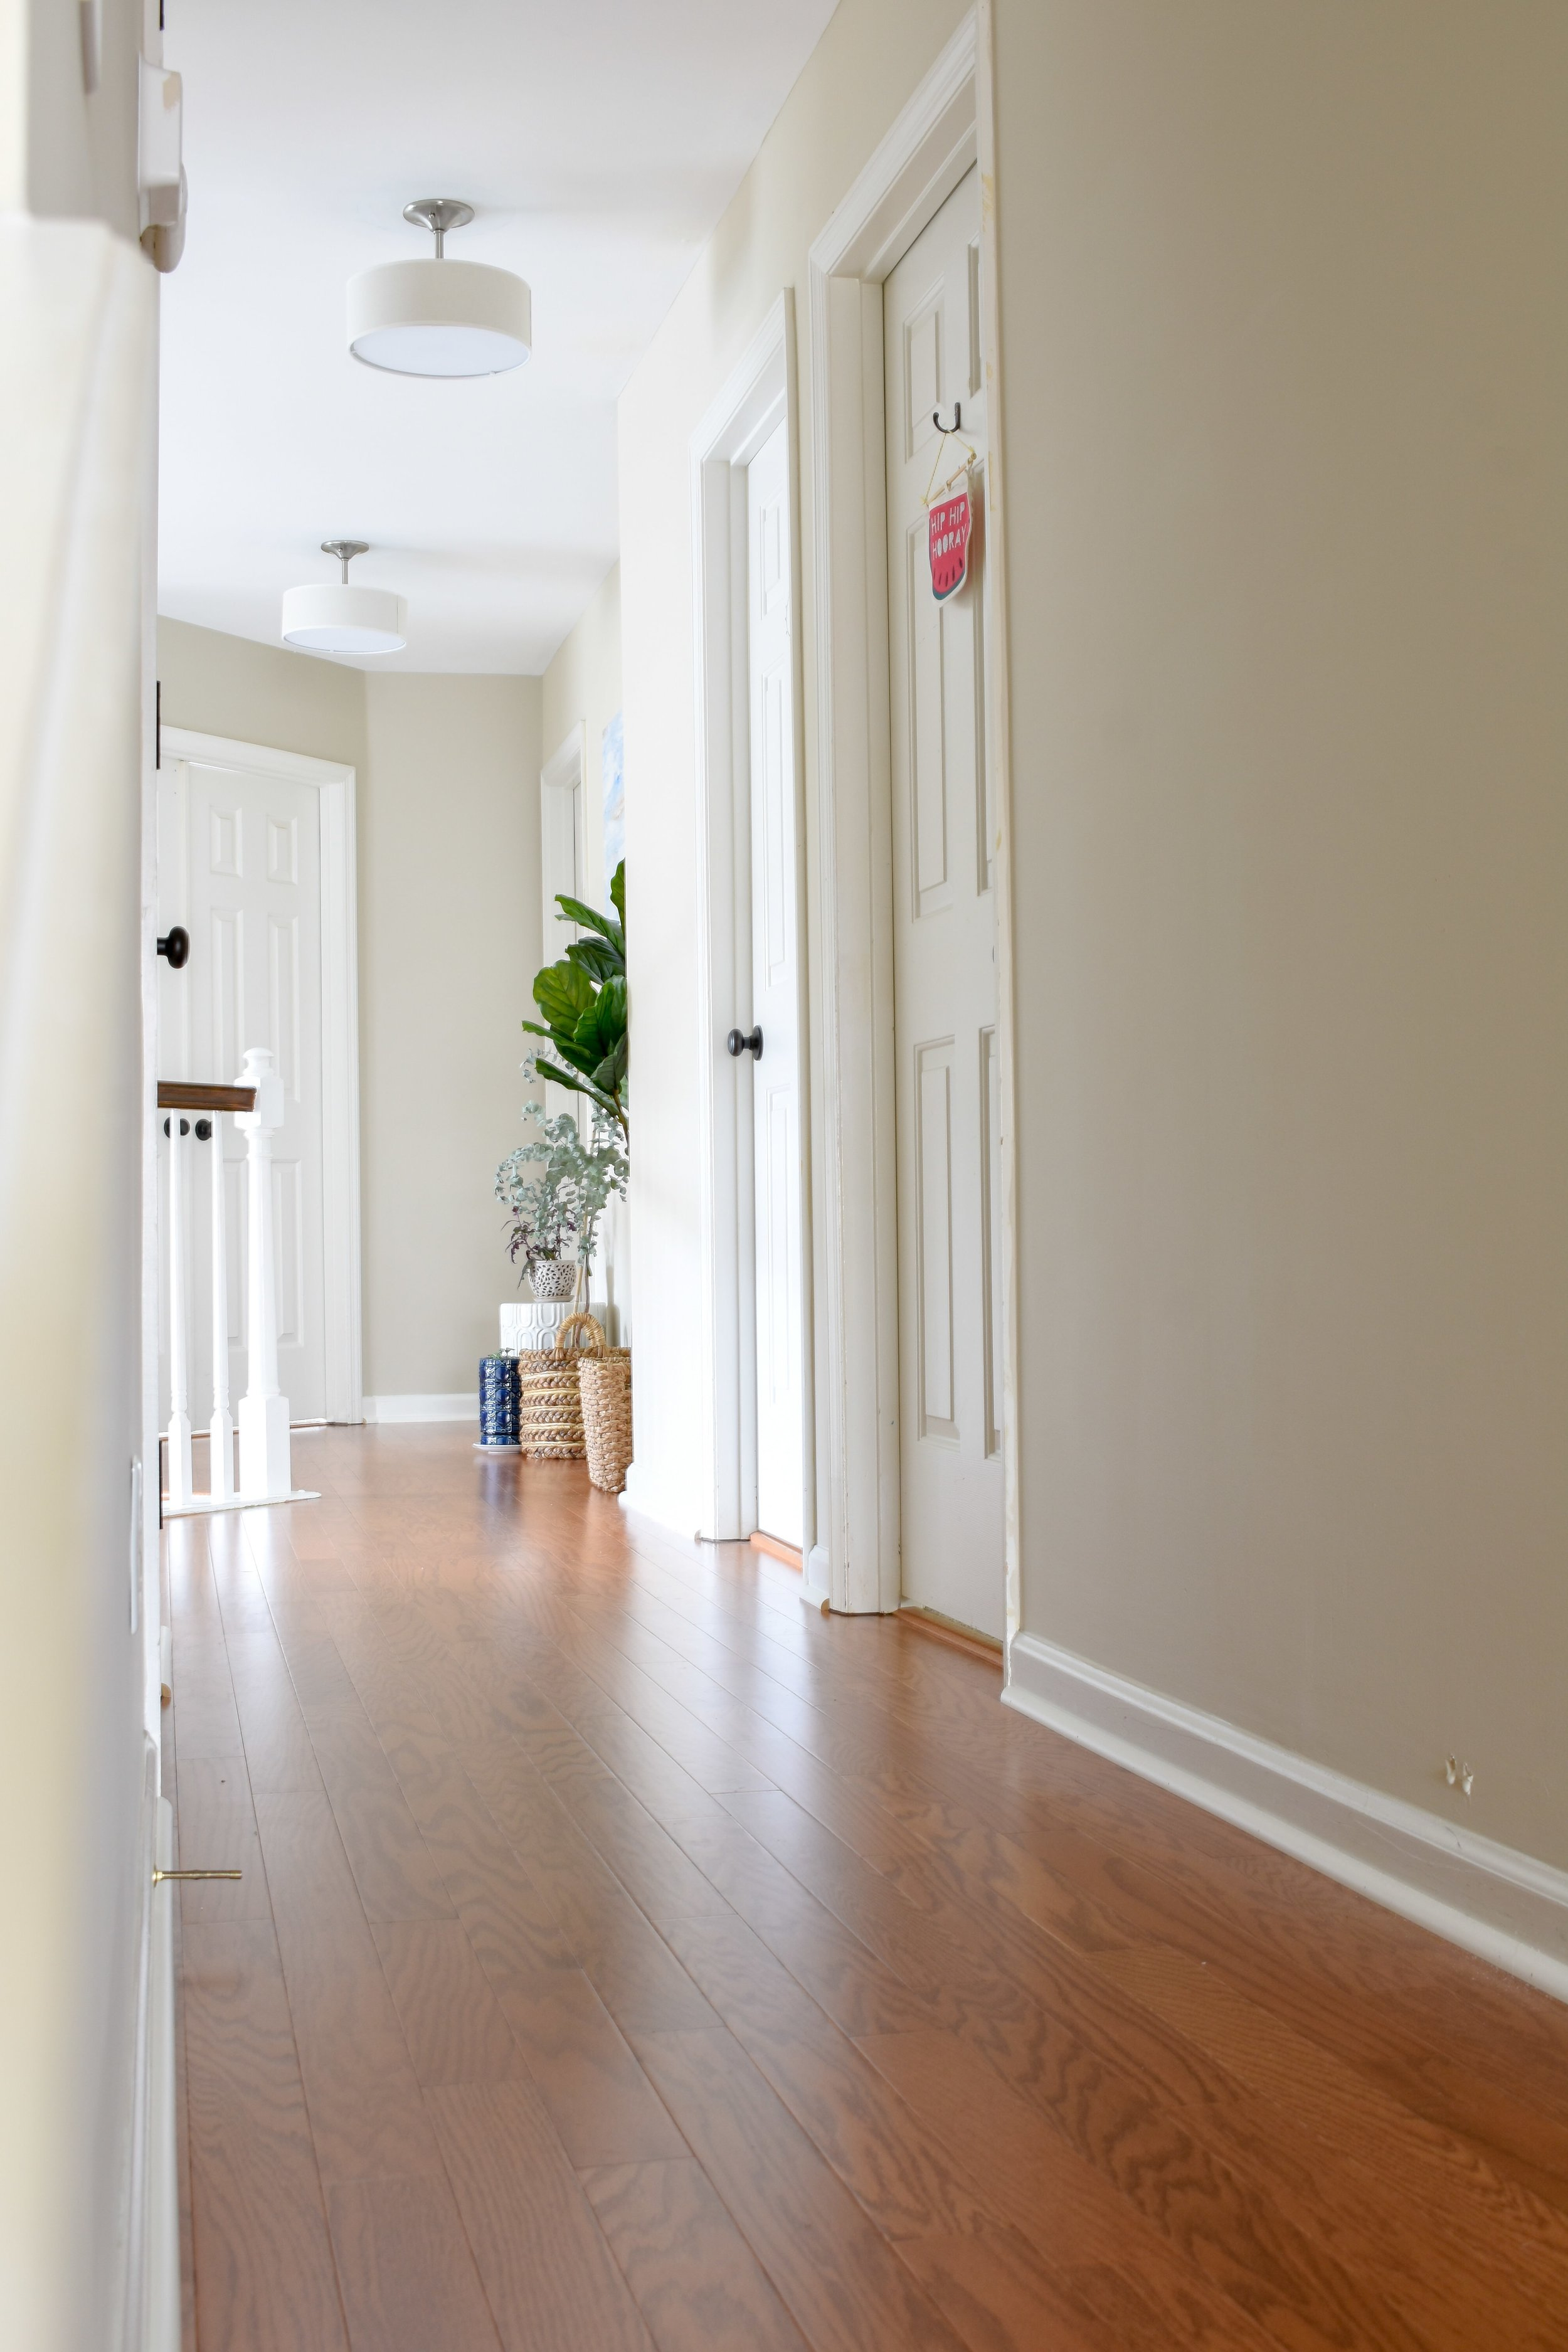 We added hardwood flooring on the stairs and in the upstairs hallway to replace the old carpet.